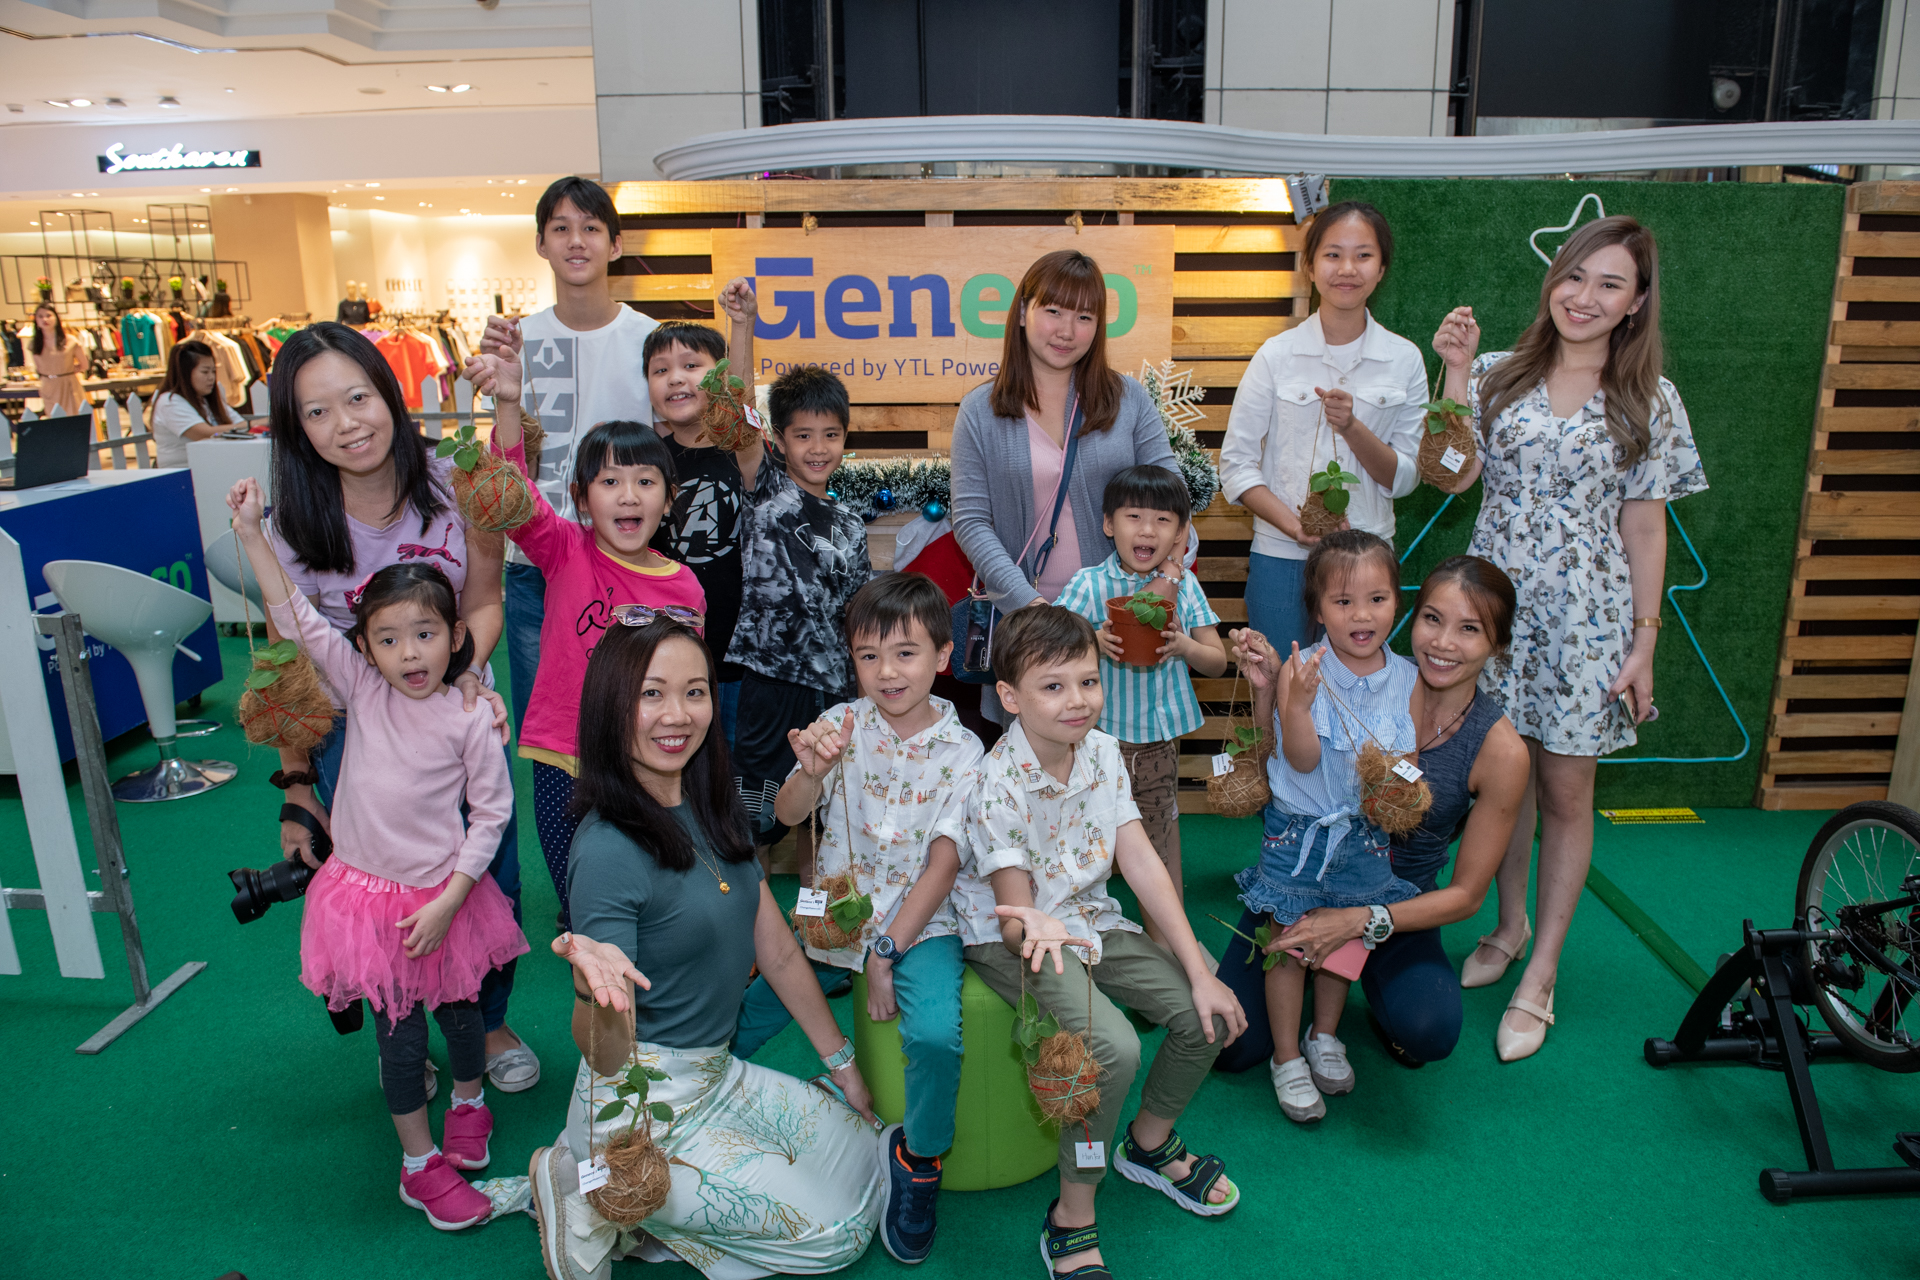 Dreaming Of A Green Christmas With Geneco